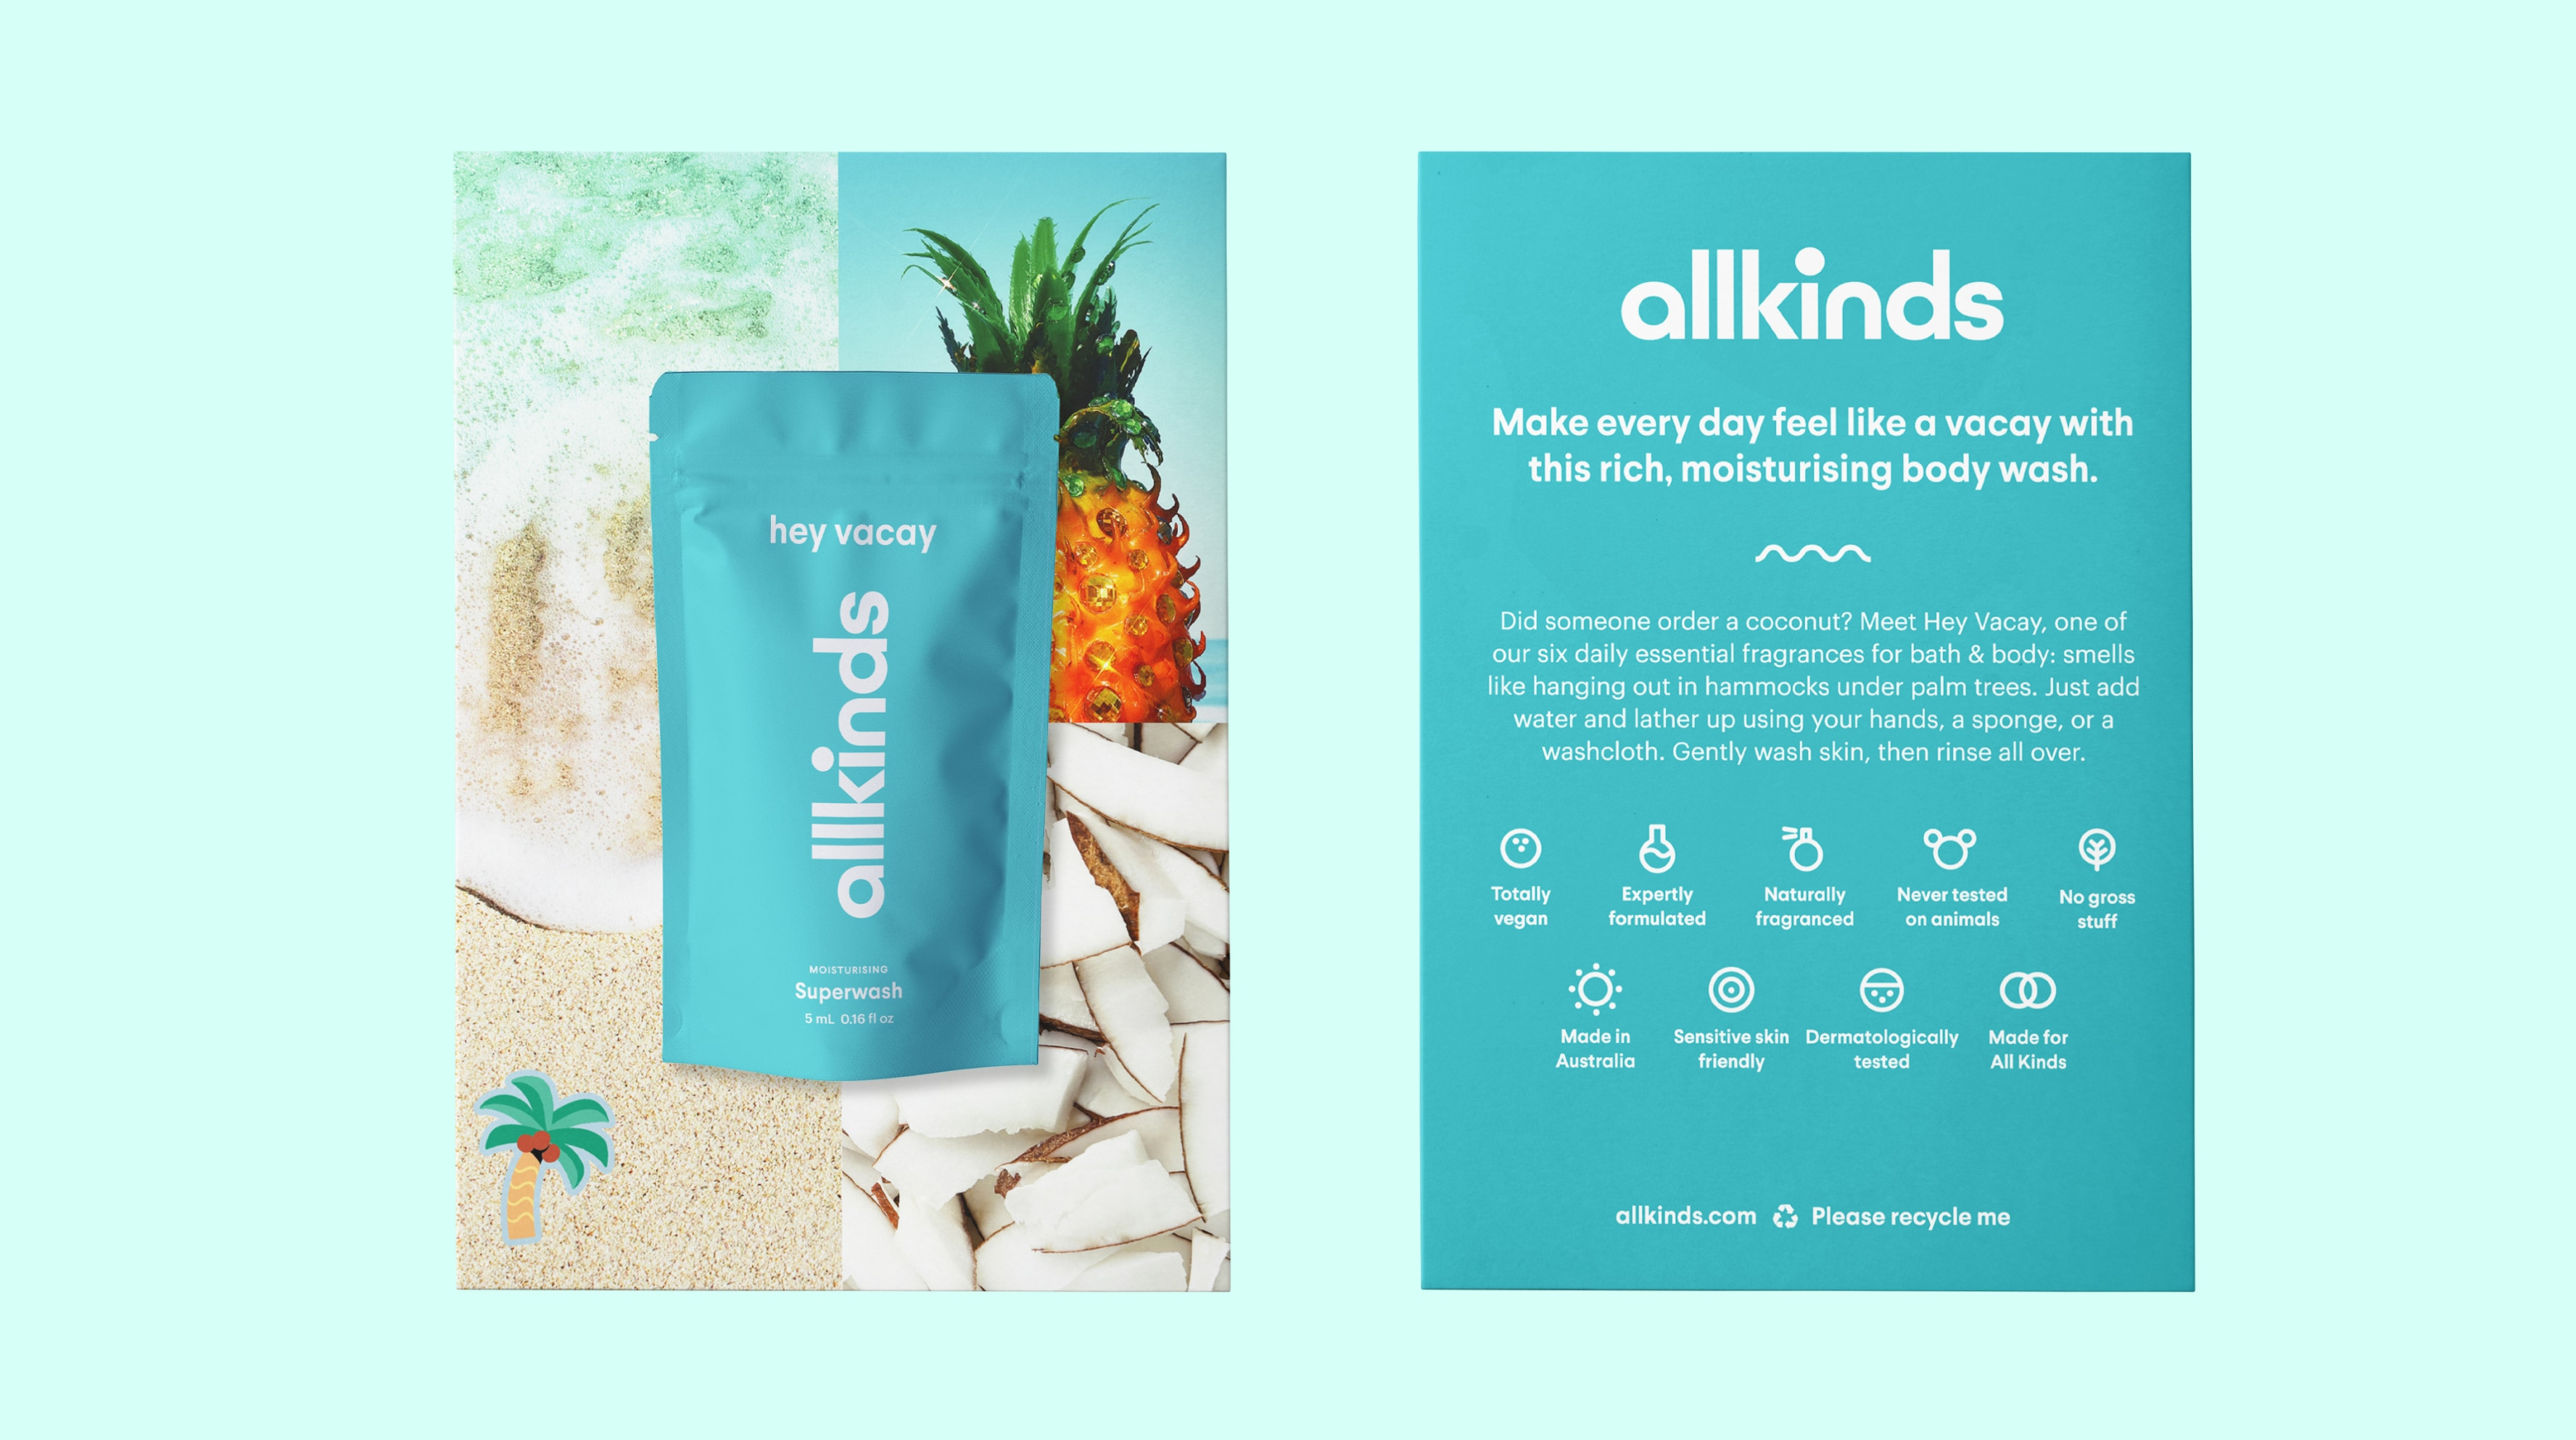 Allkinds Hey Vacay Superwash sample and sampling card packaging for retail distribution